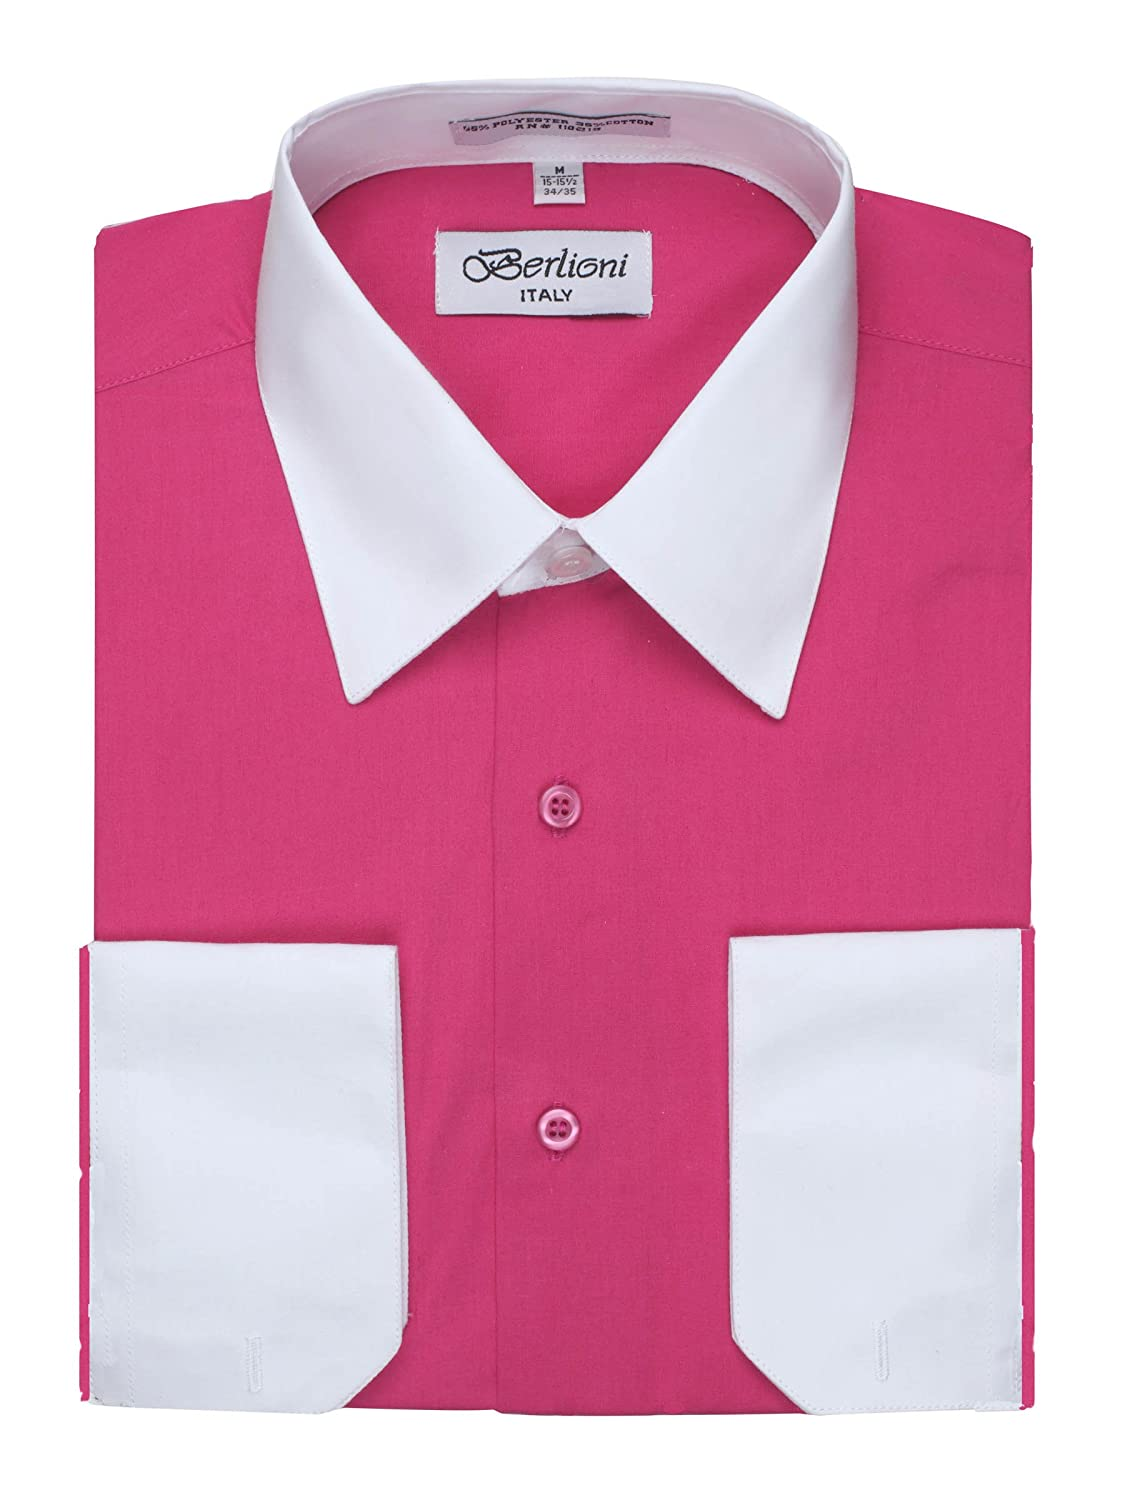 Berlioni Men's Two Toned Dress Shirt with Convertible Faux French Cuffs - Many Colors BL110